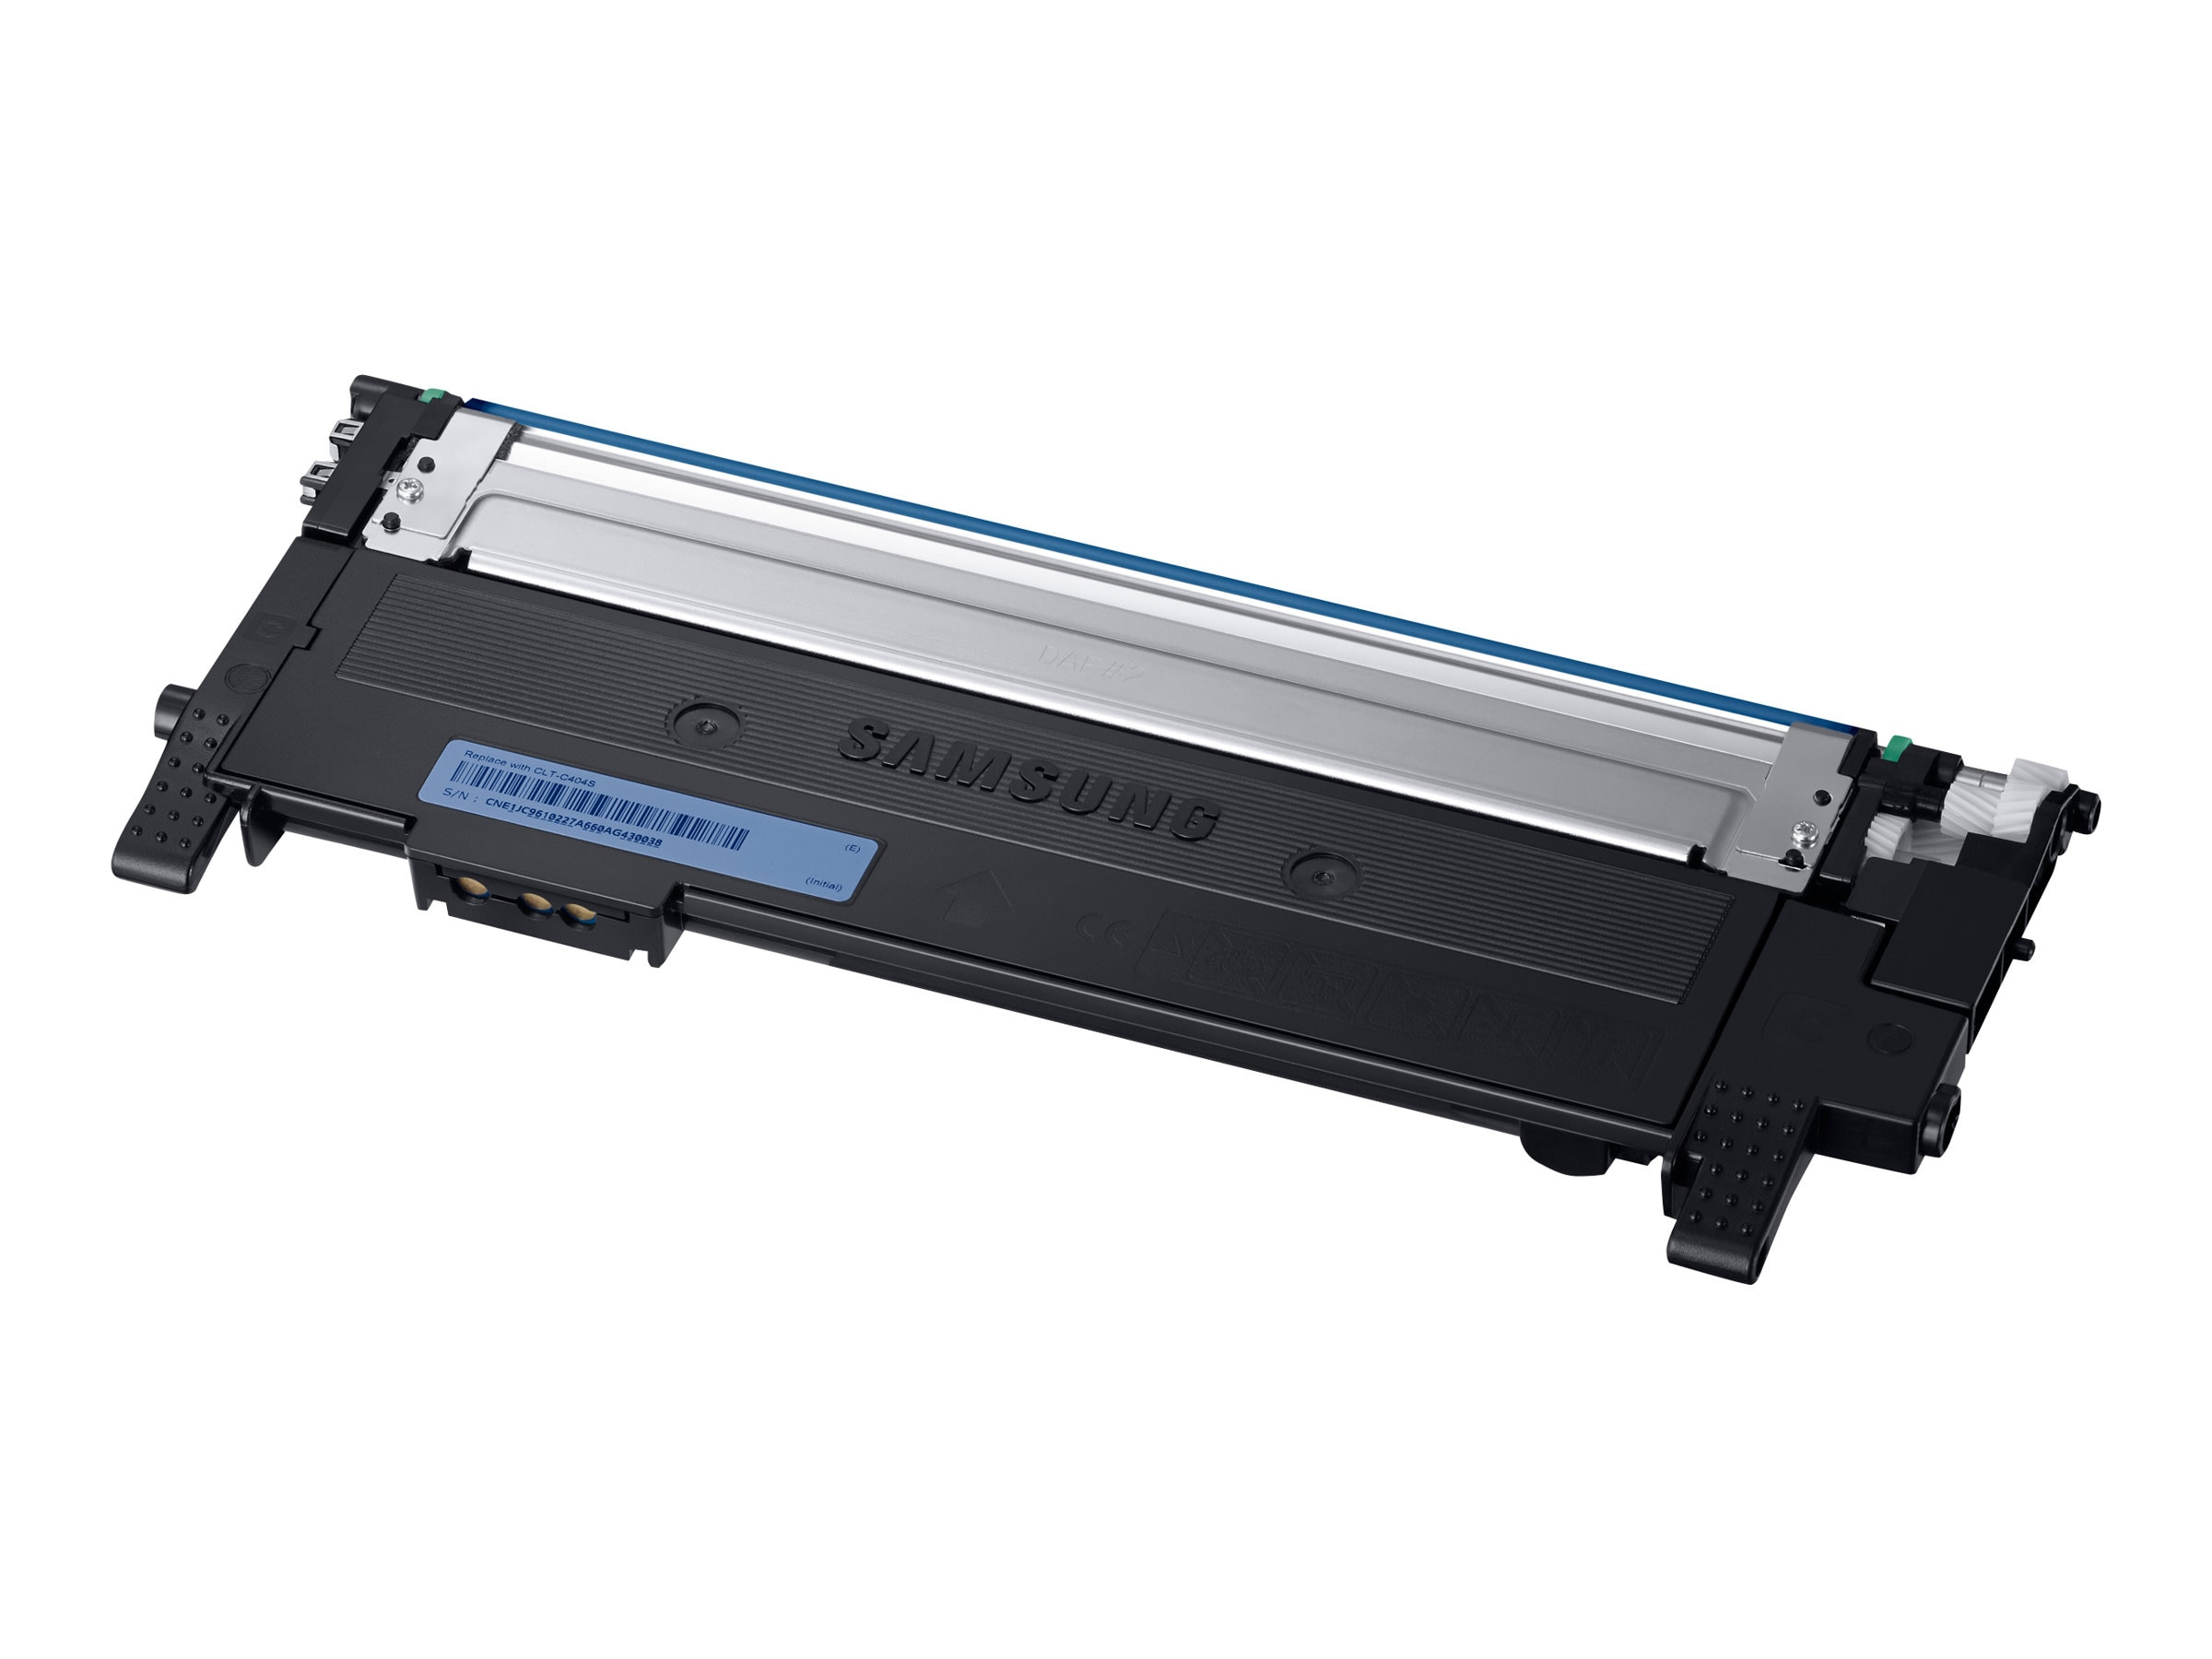 Samsung Cyan Toner Cartridge for XPress C430W, C480W & C480FW, CLT-C404S/XAA